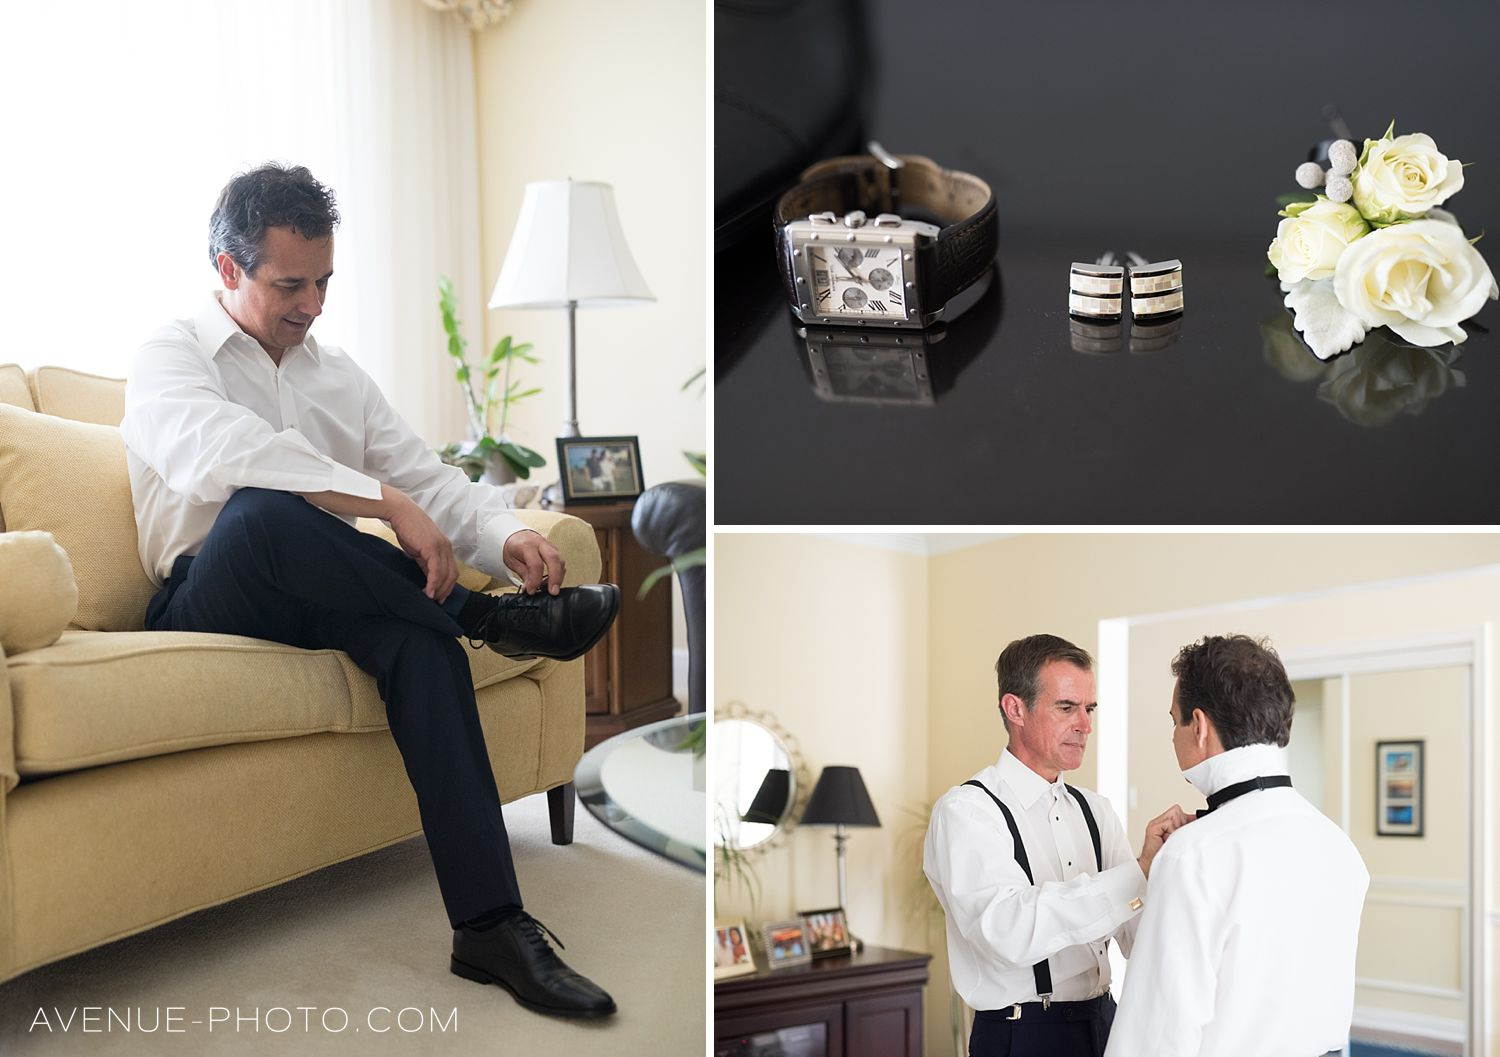 Caffino Ristorante Wedding, Liberty Village Wedding Photos, Toronto Wedding Photographer